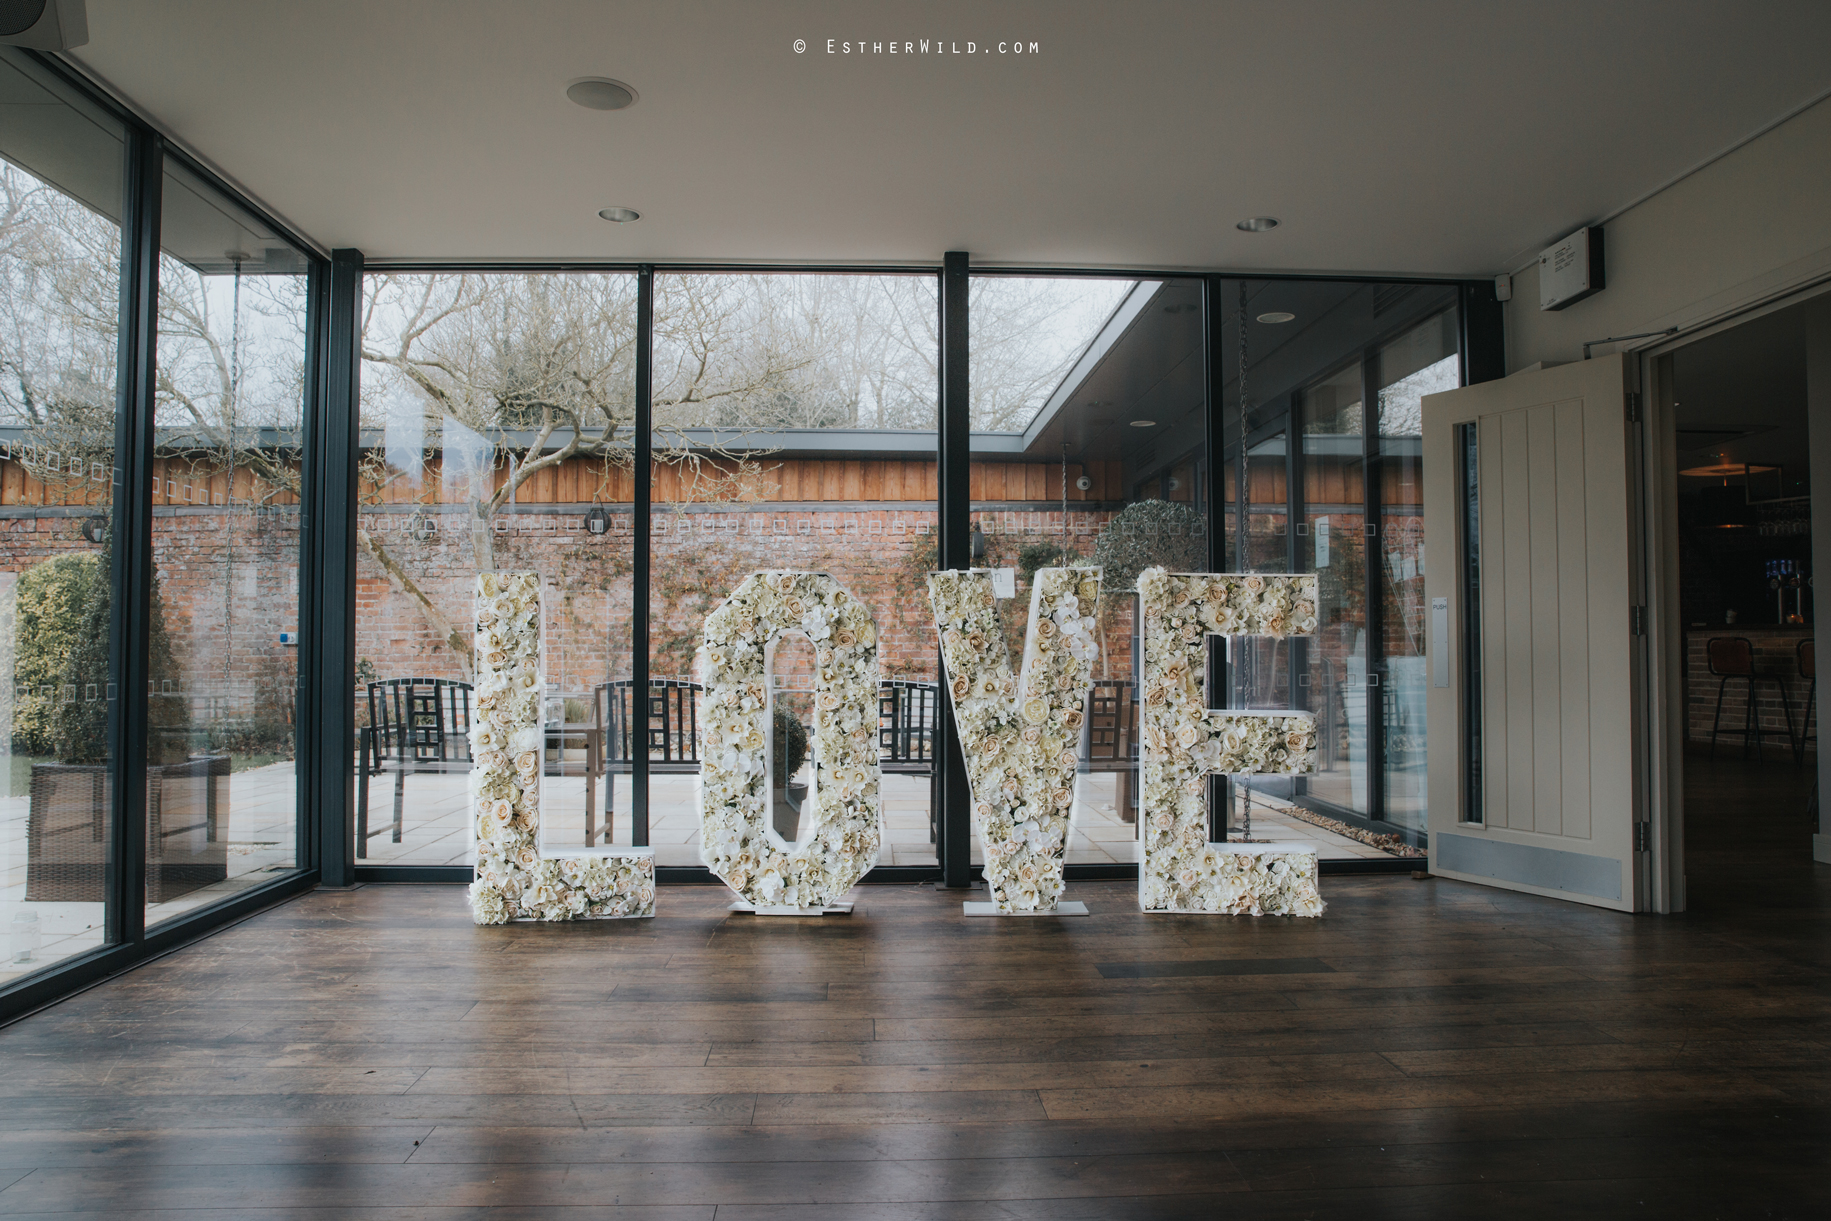 Norfolk_Mead_Hotel_Norwich_Wedding_Copyright_Esther_Wild_Photographer_IMG_0379.jpg